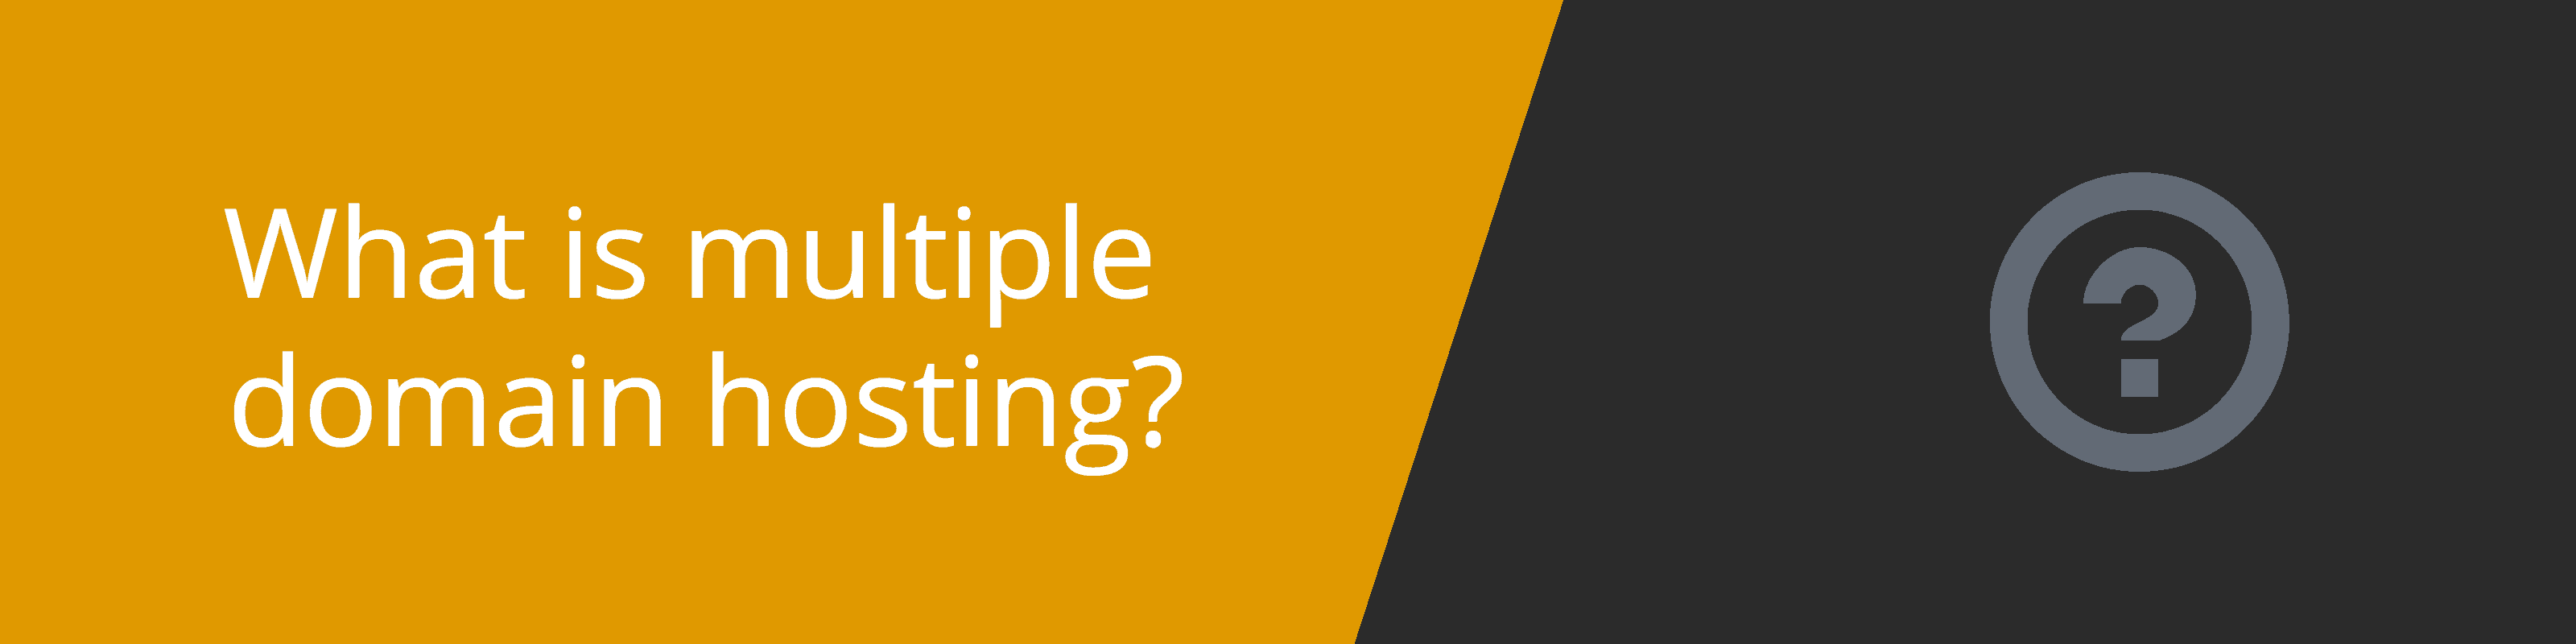 what is multiple domain hosting